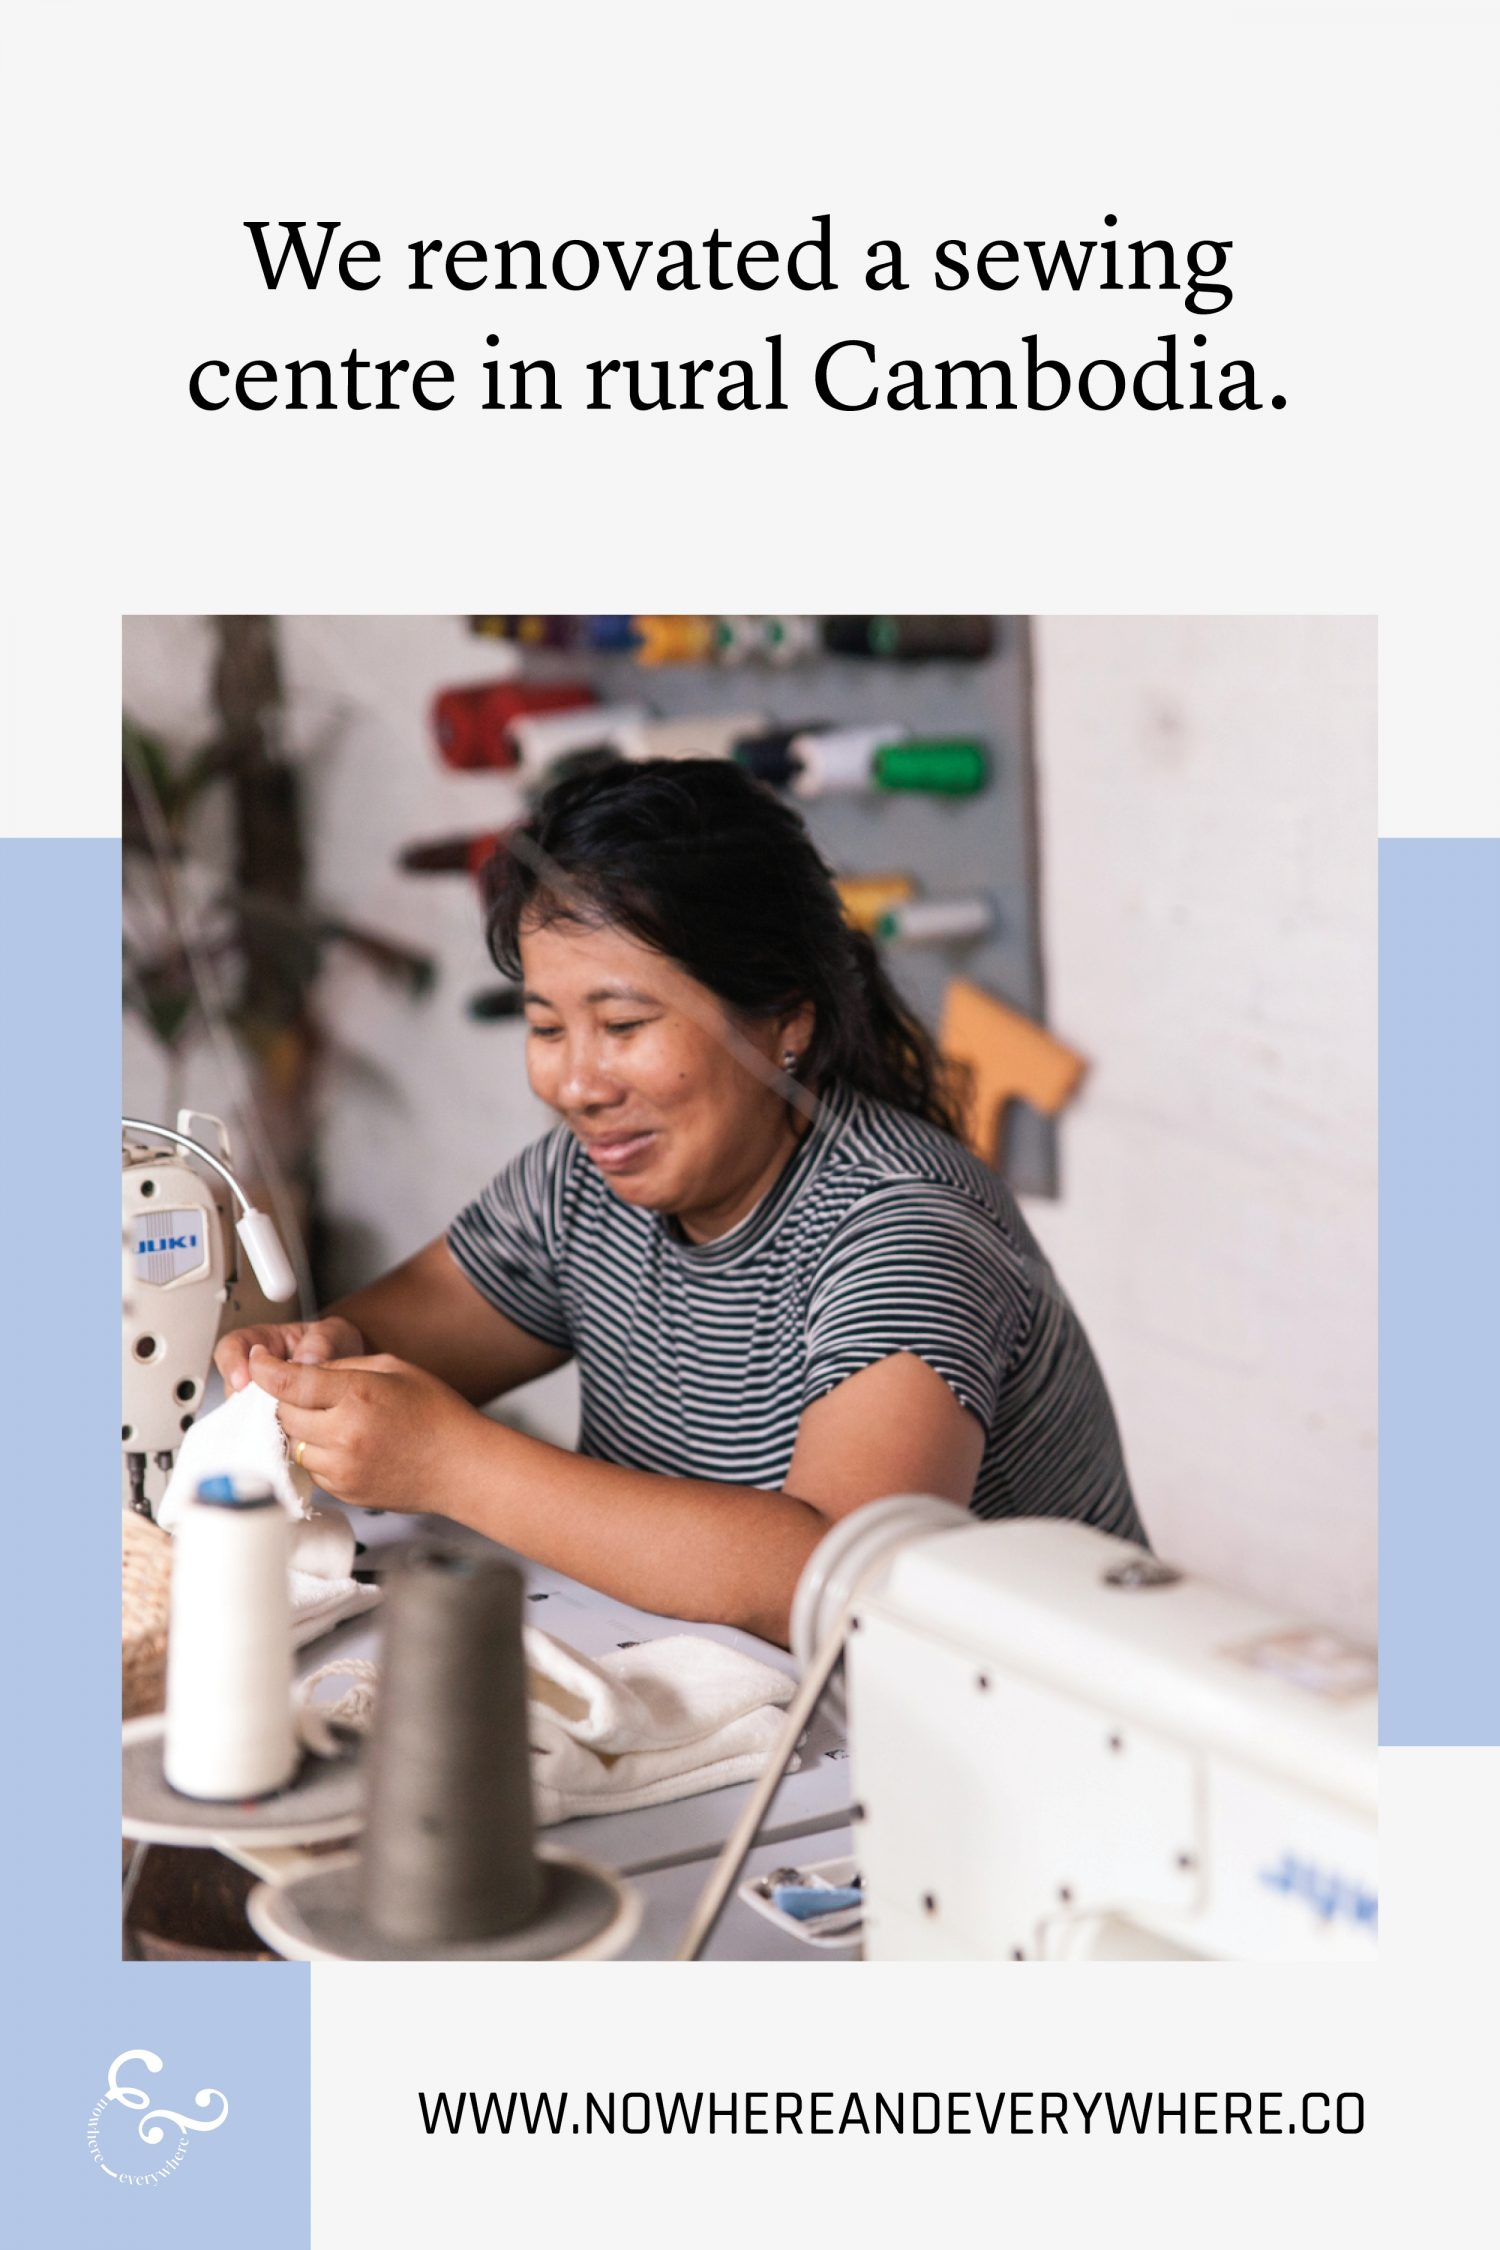 Renovating a sewing centre in rural Cambodia Nowhere & Everywhere Sustainable Travel